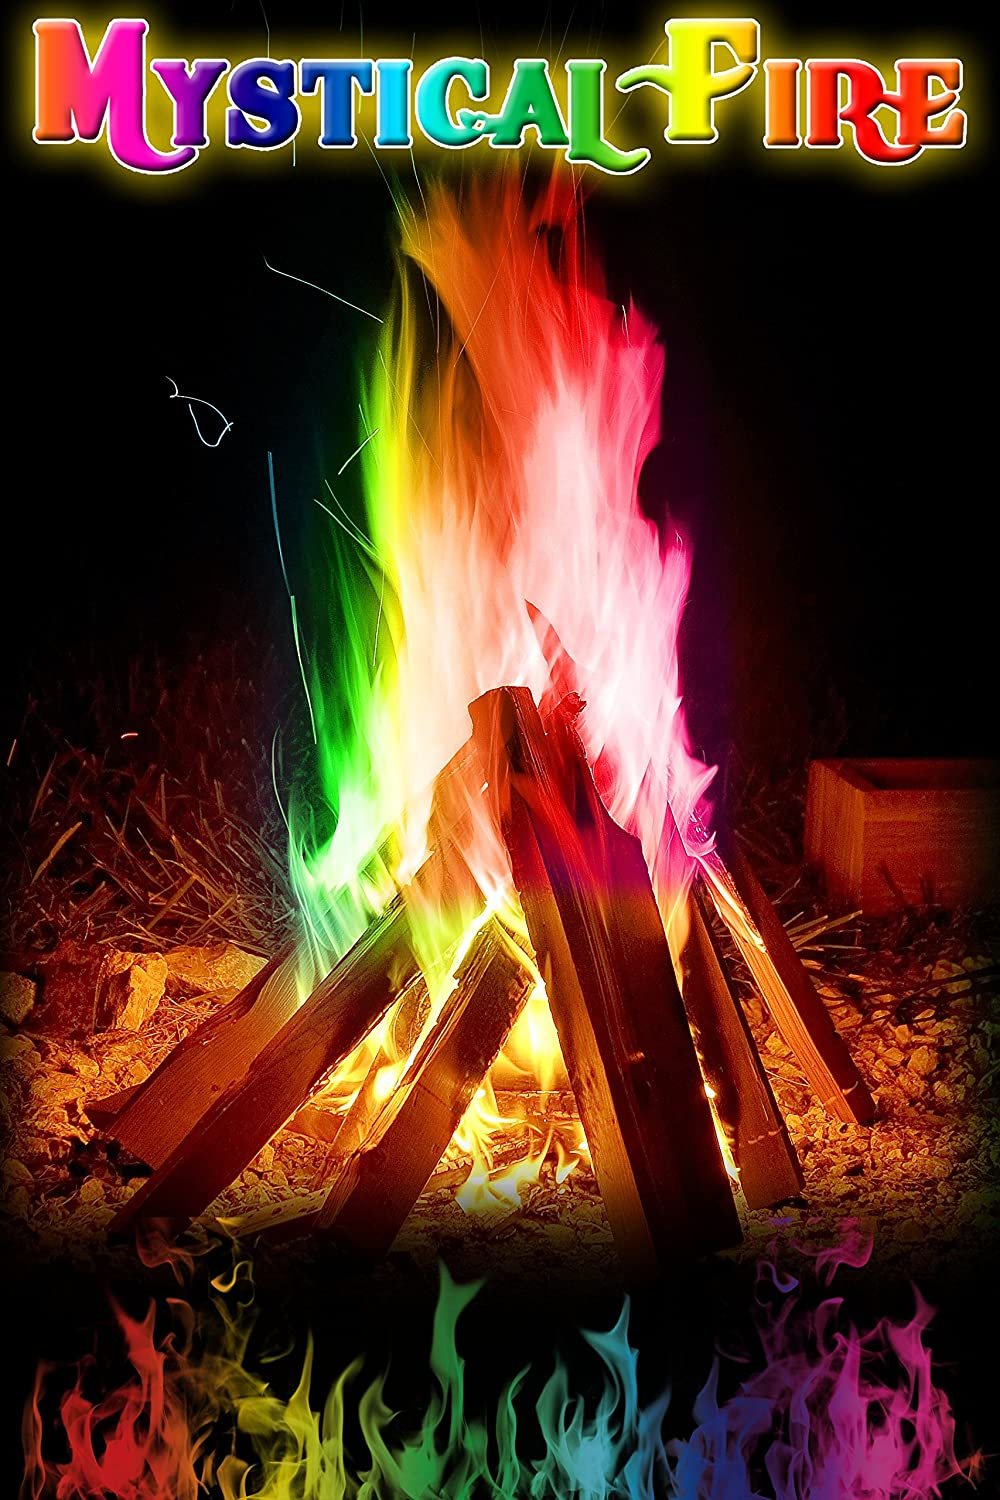 Fire Flame Colorant made our list of 10 fun activities and campfire games for families with kids